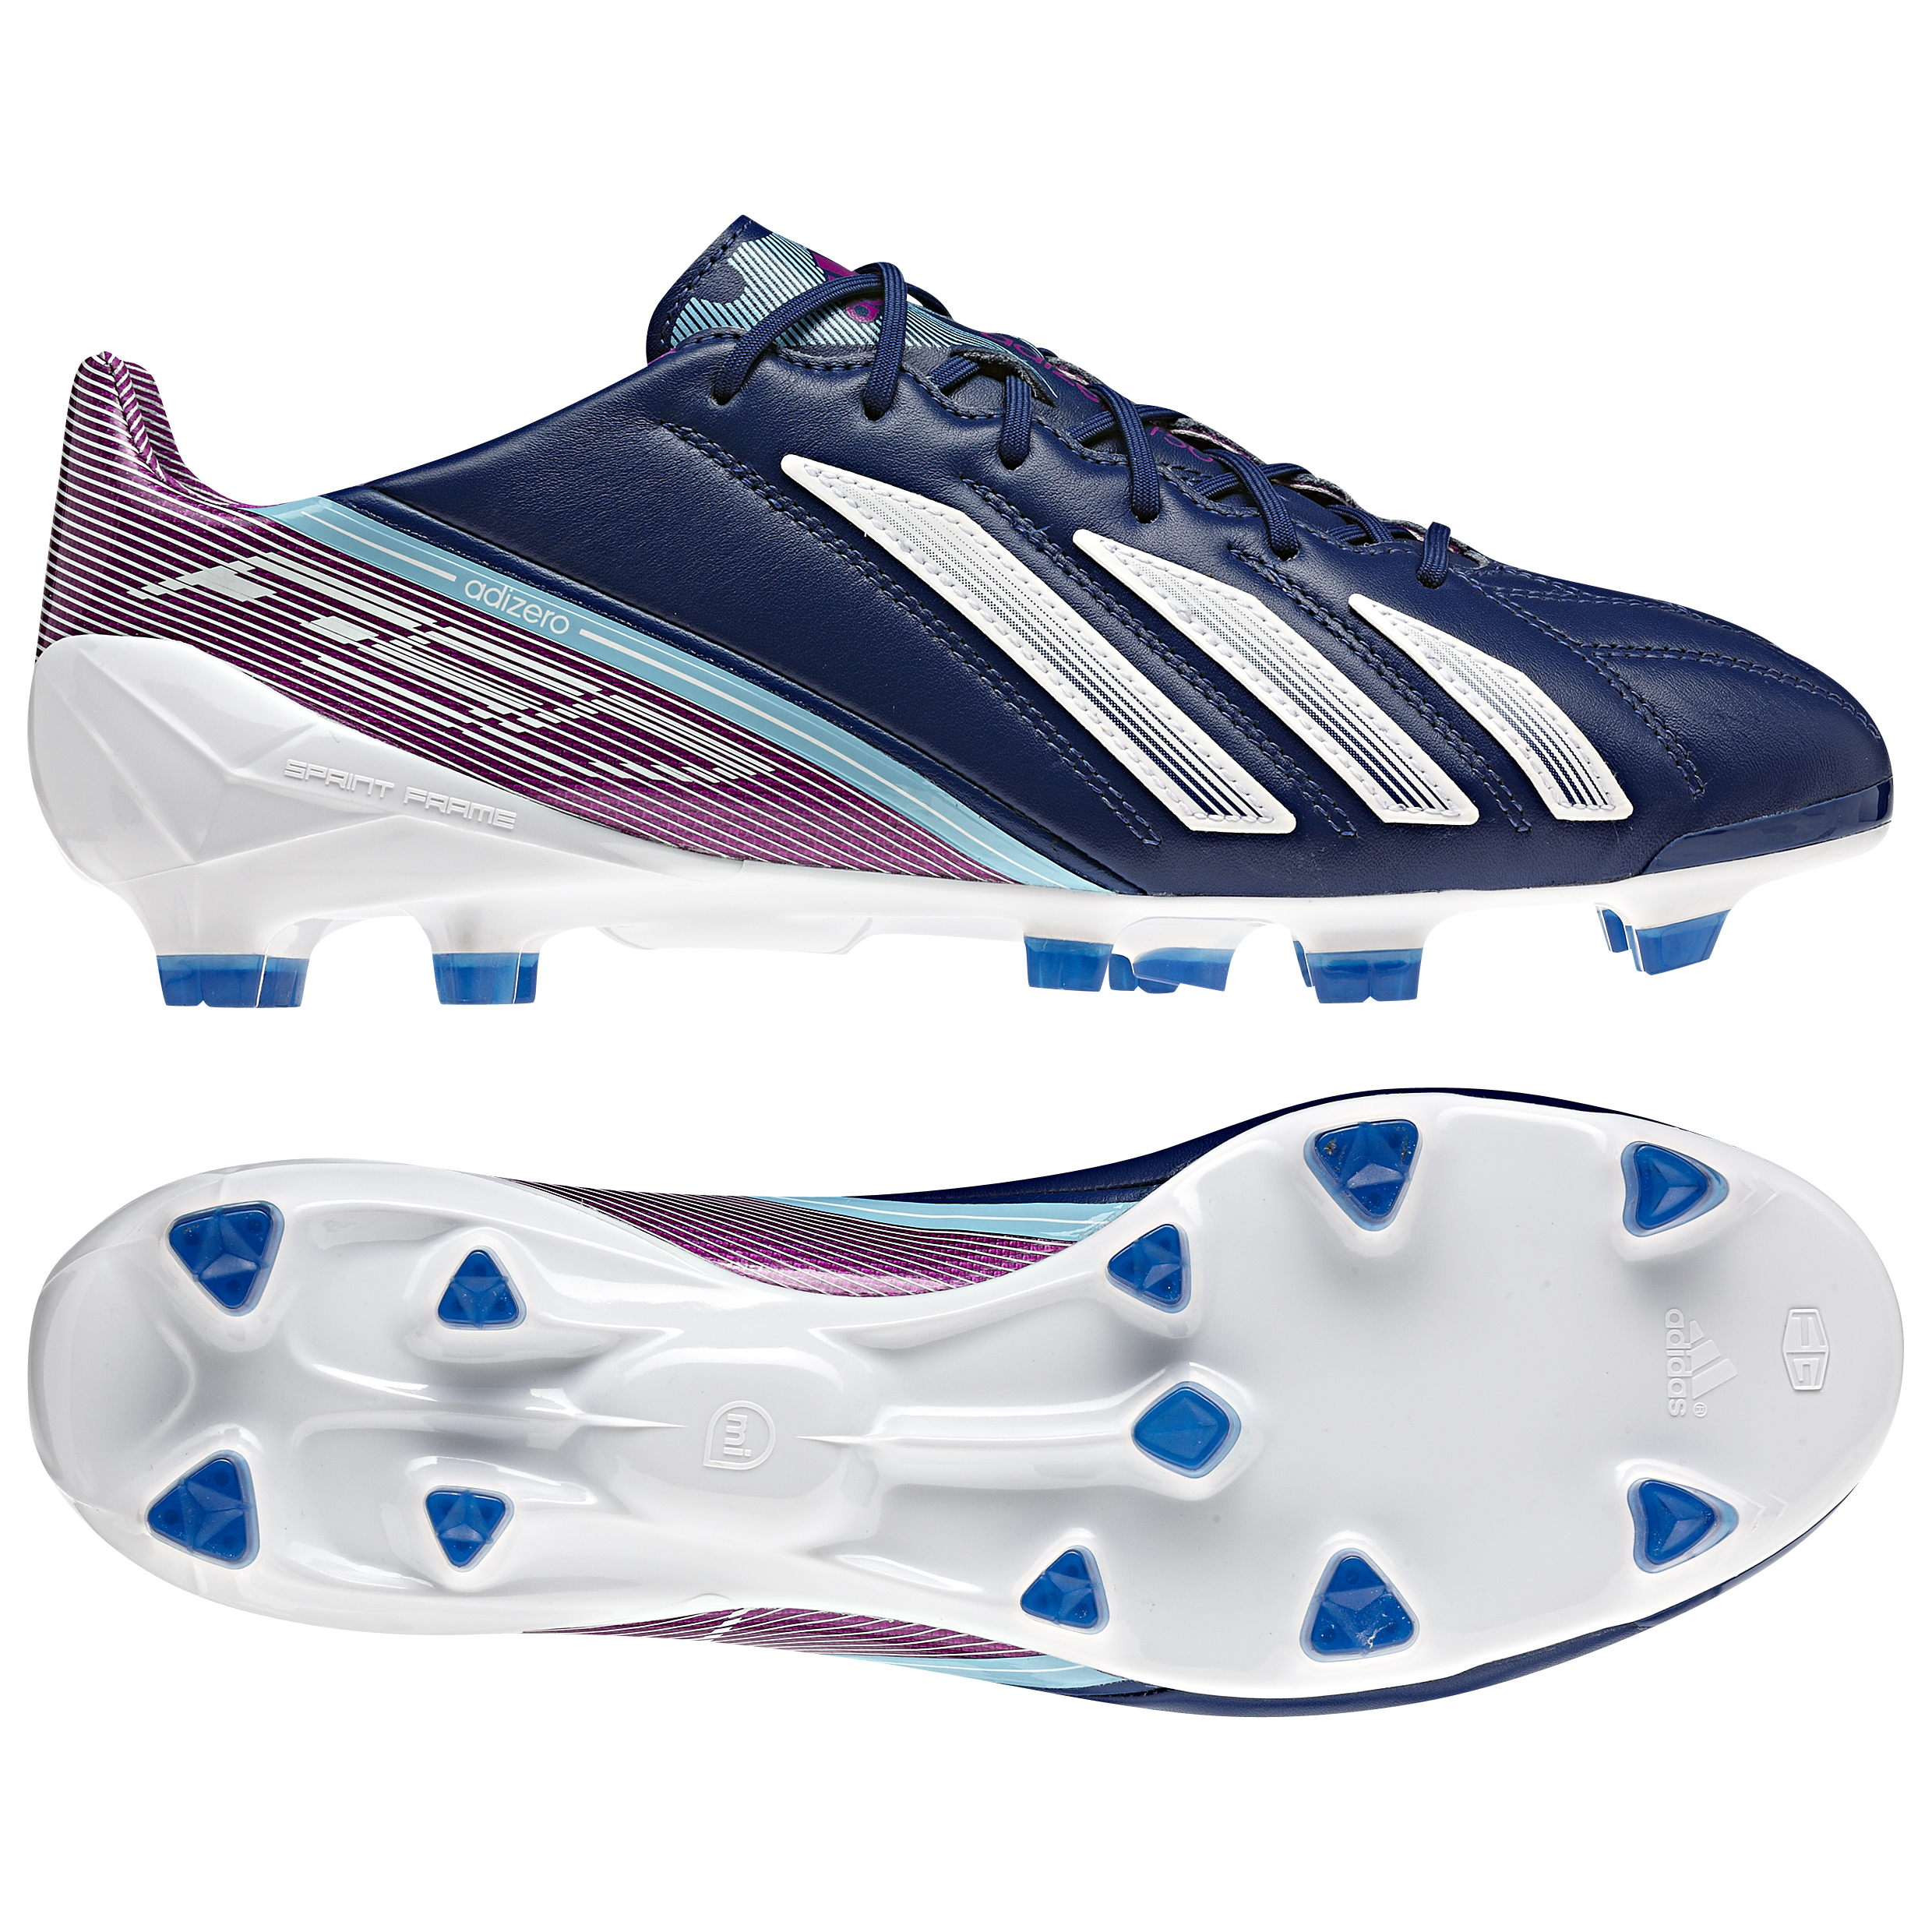 AdiZero F50 TRX FG Leather Dark Blue/White/Vivid Pink